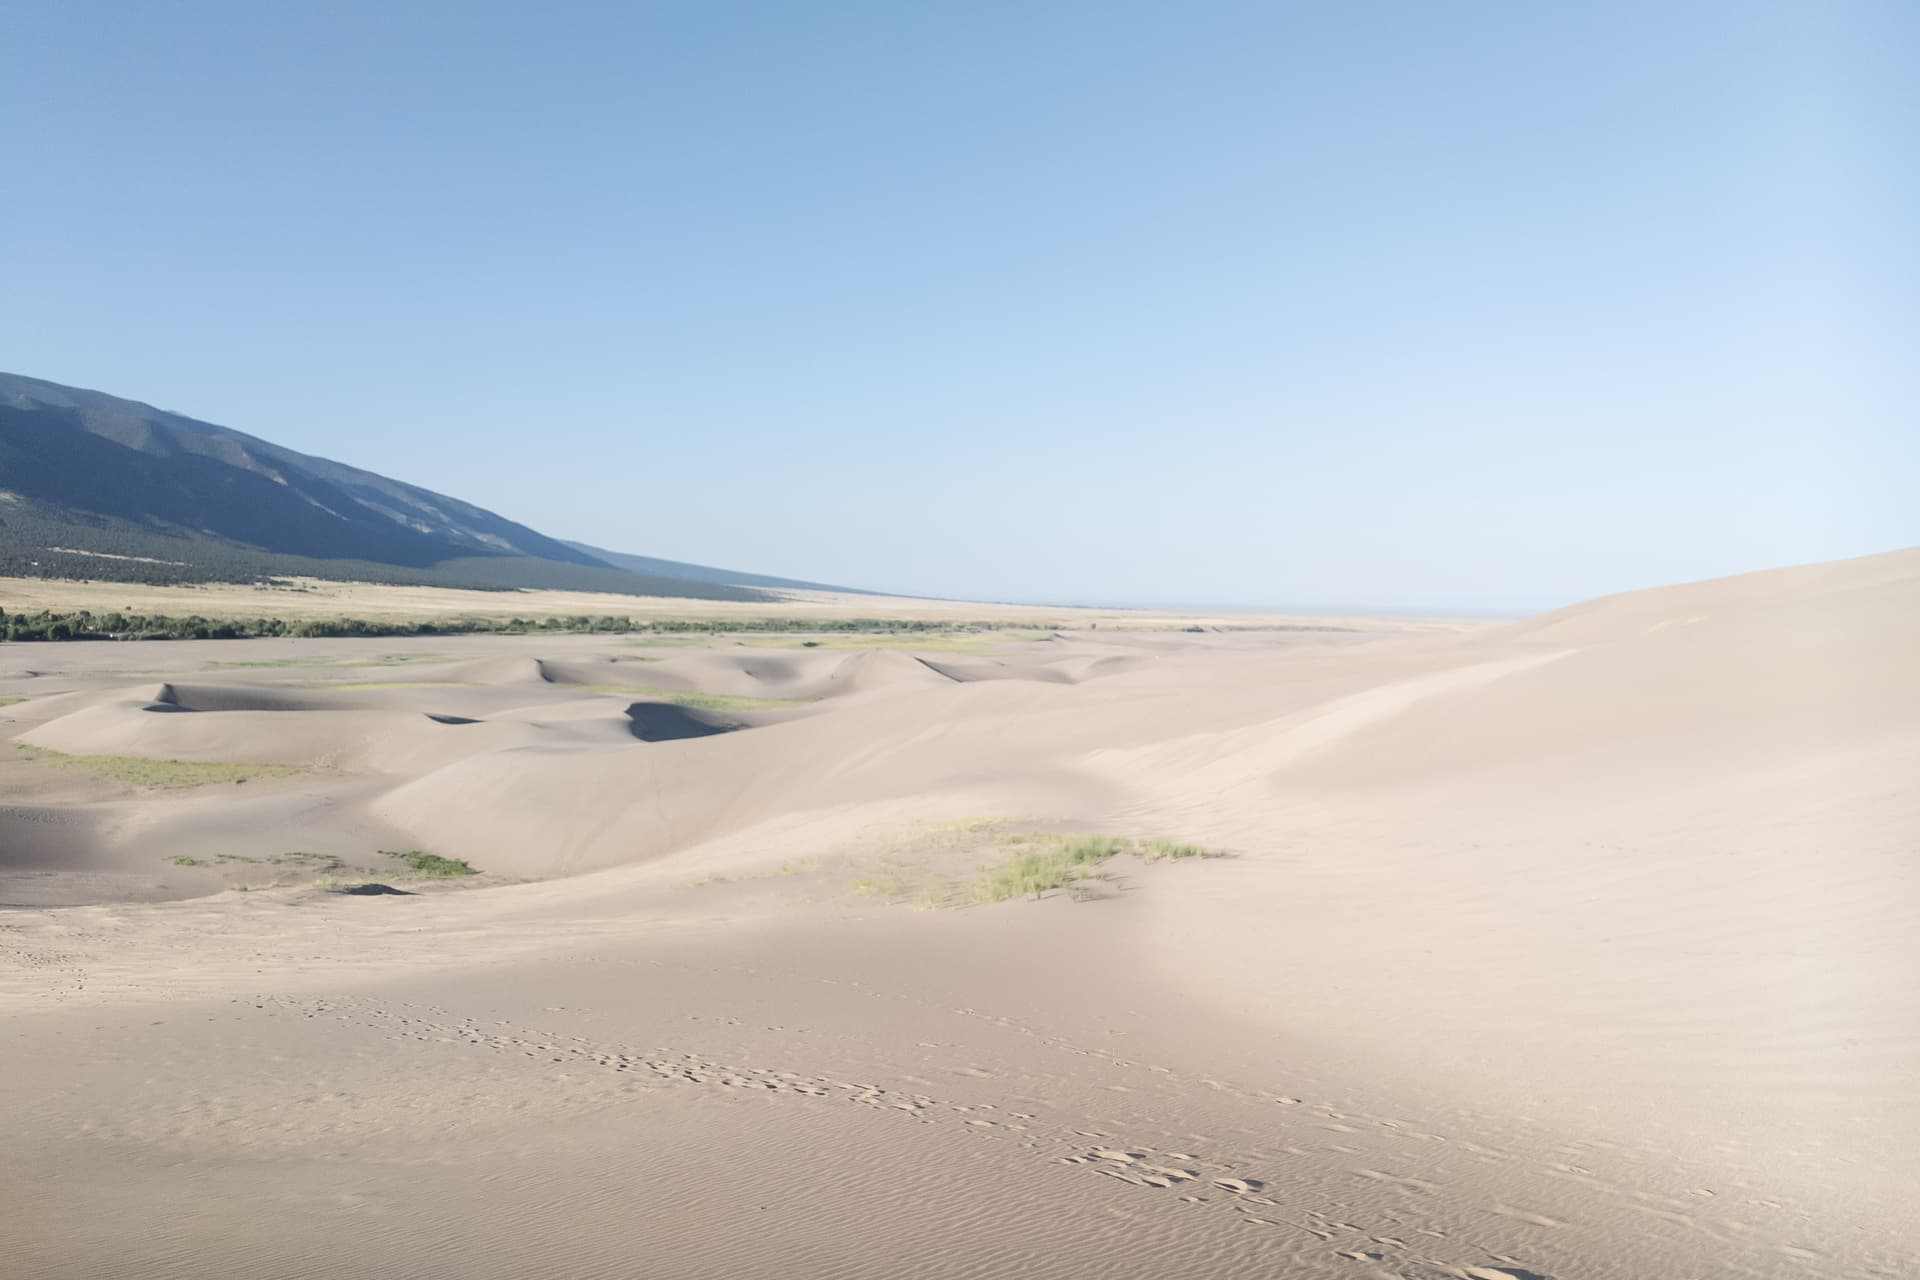 Looking across a field of sand dunes. In the distance the dunes give way to desert scrubland, and then eventually to juniper-covered mountains.